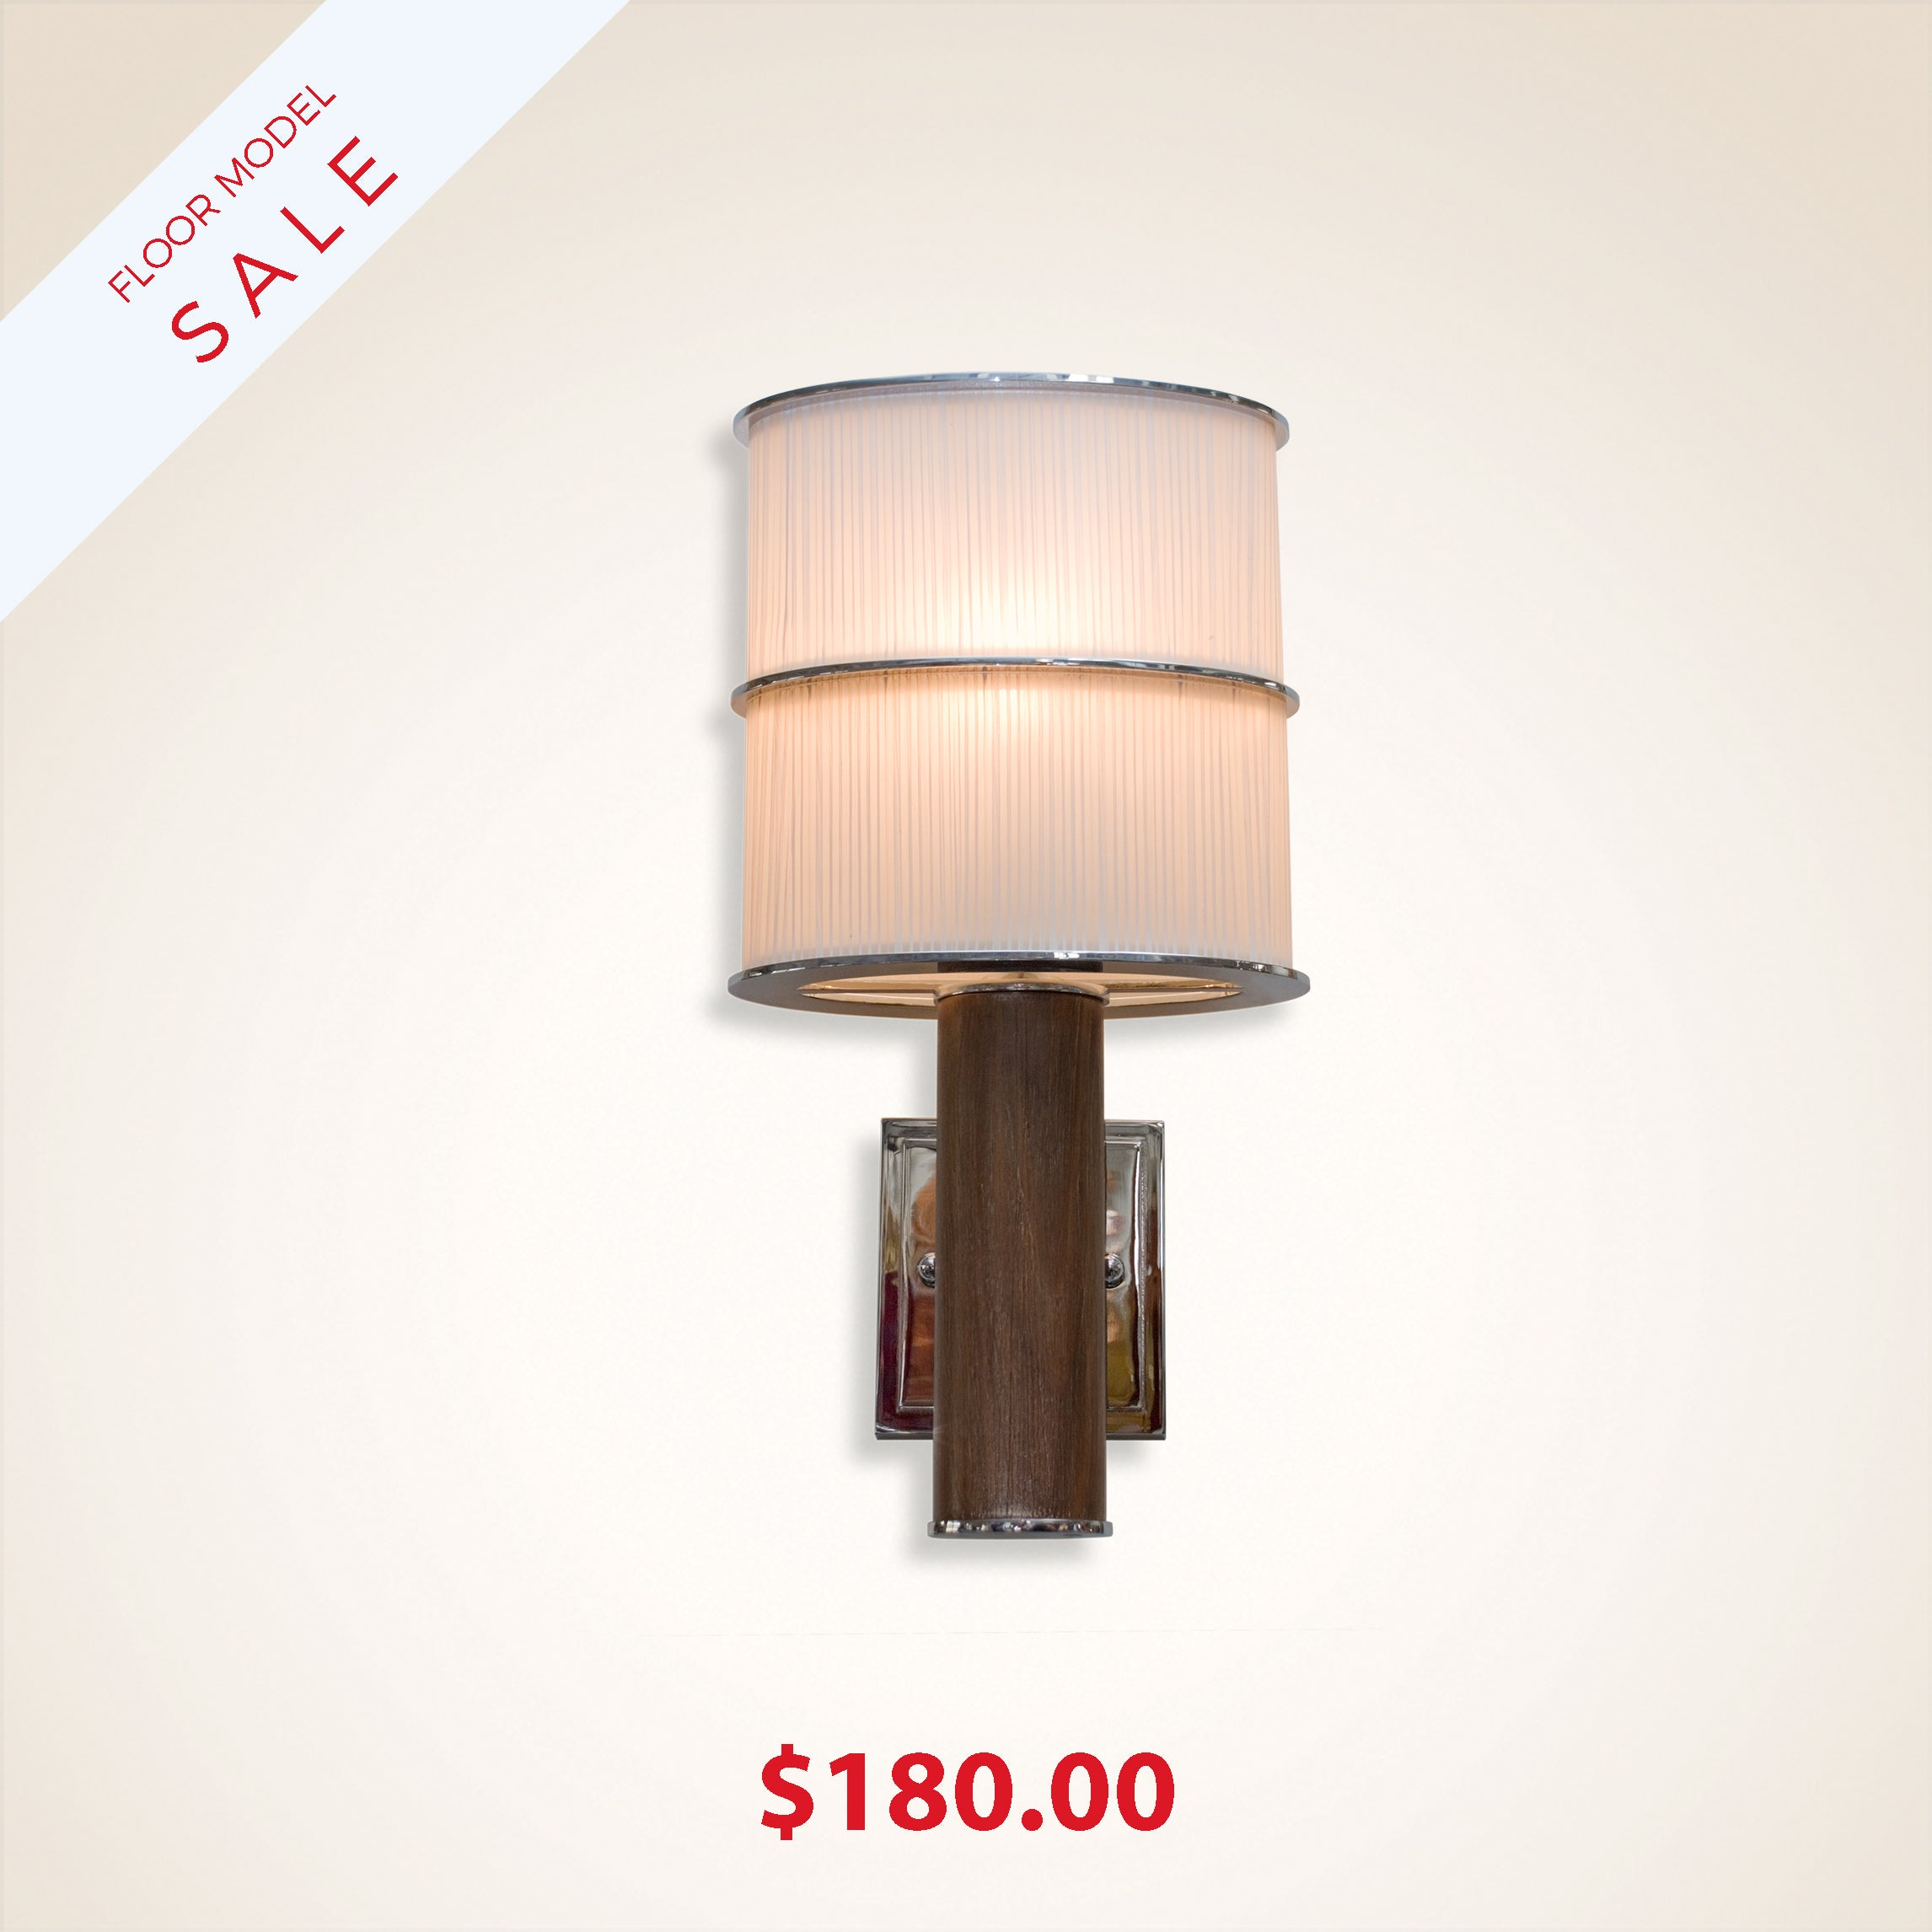 Agg Oval Wall Sconce